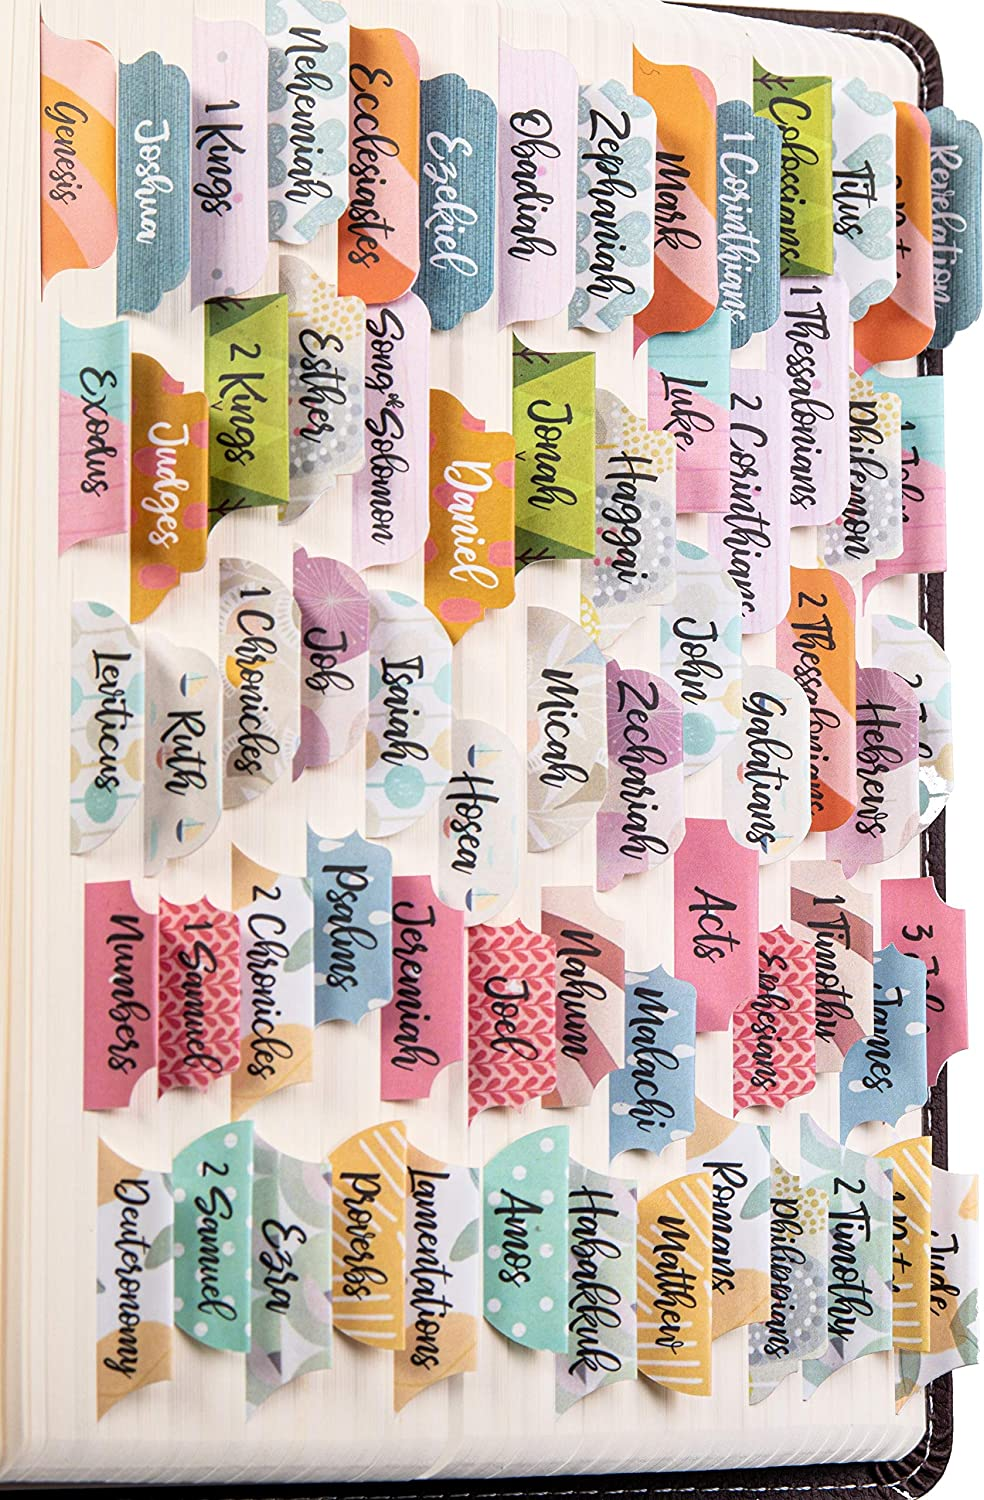 Large Print, Easy to Read 66 Tabs for Old and New Testament Personalized Bible Journaling Supplies 120 Bible Index Tabs in Total Farmhouse Theme Laminated Bible Tabs Additional 54 Blank Tabs